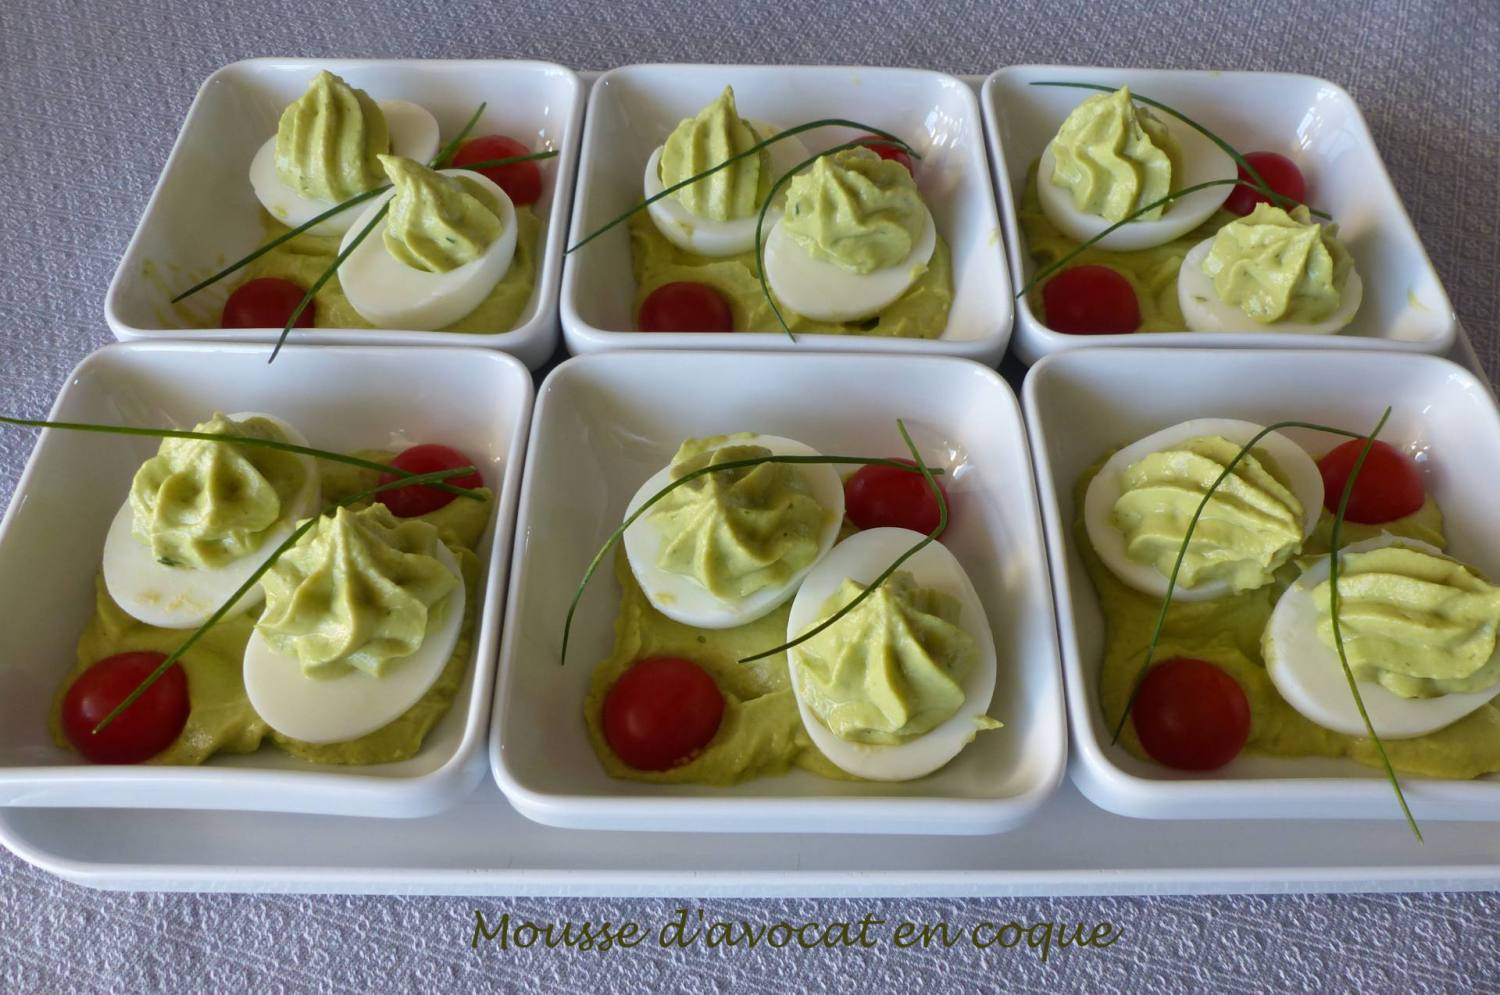 Mousse d'avocat en coque P1220097 R